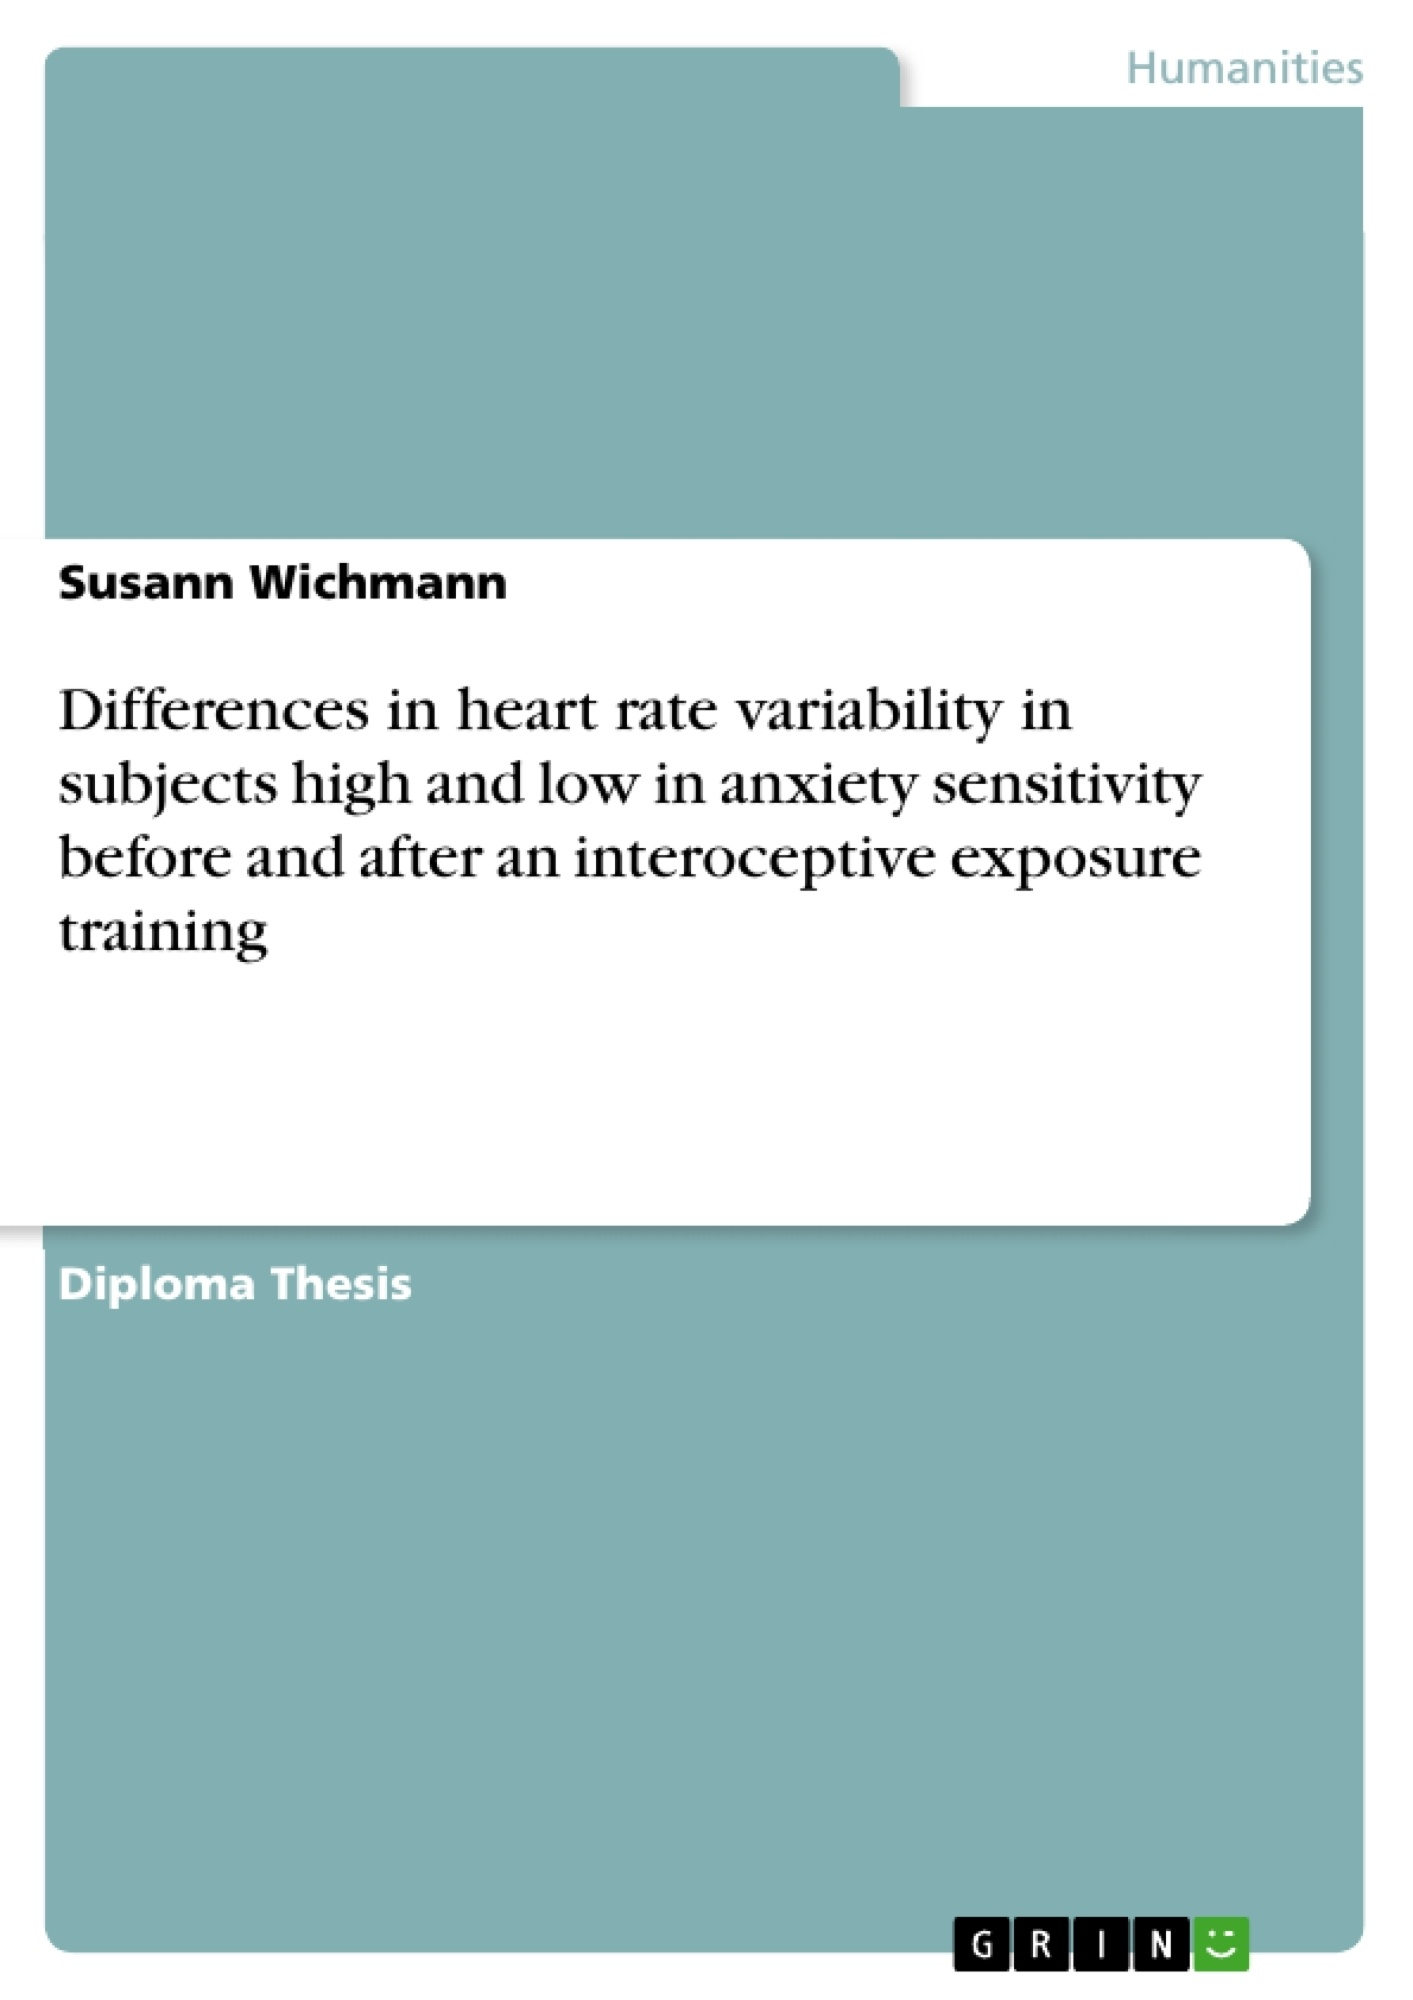 Title: Differences in heart rate variability in subjects high and low in anxiety sensitivity before and after an interoceptive exposure training